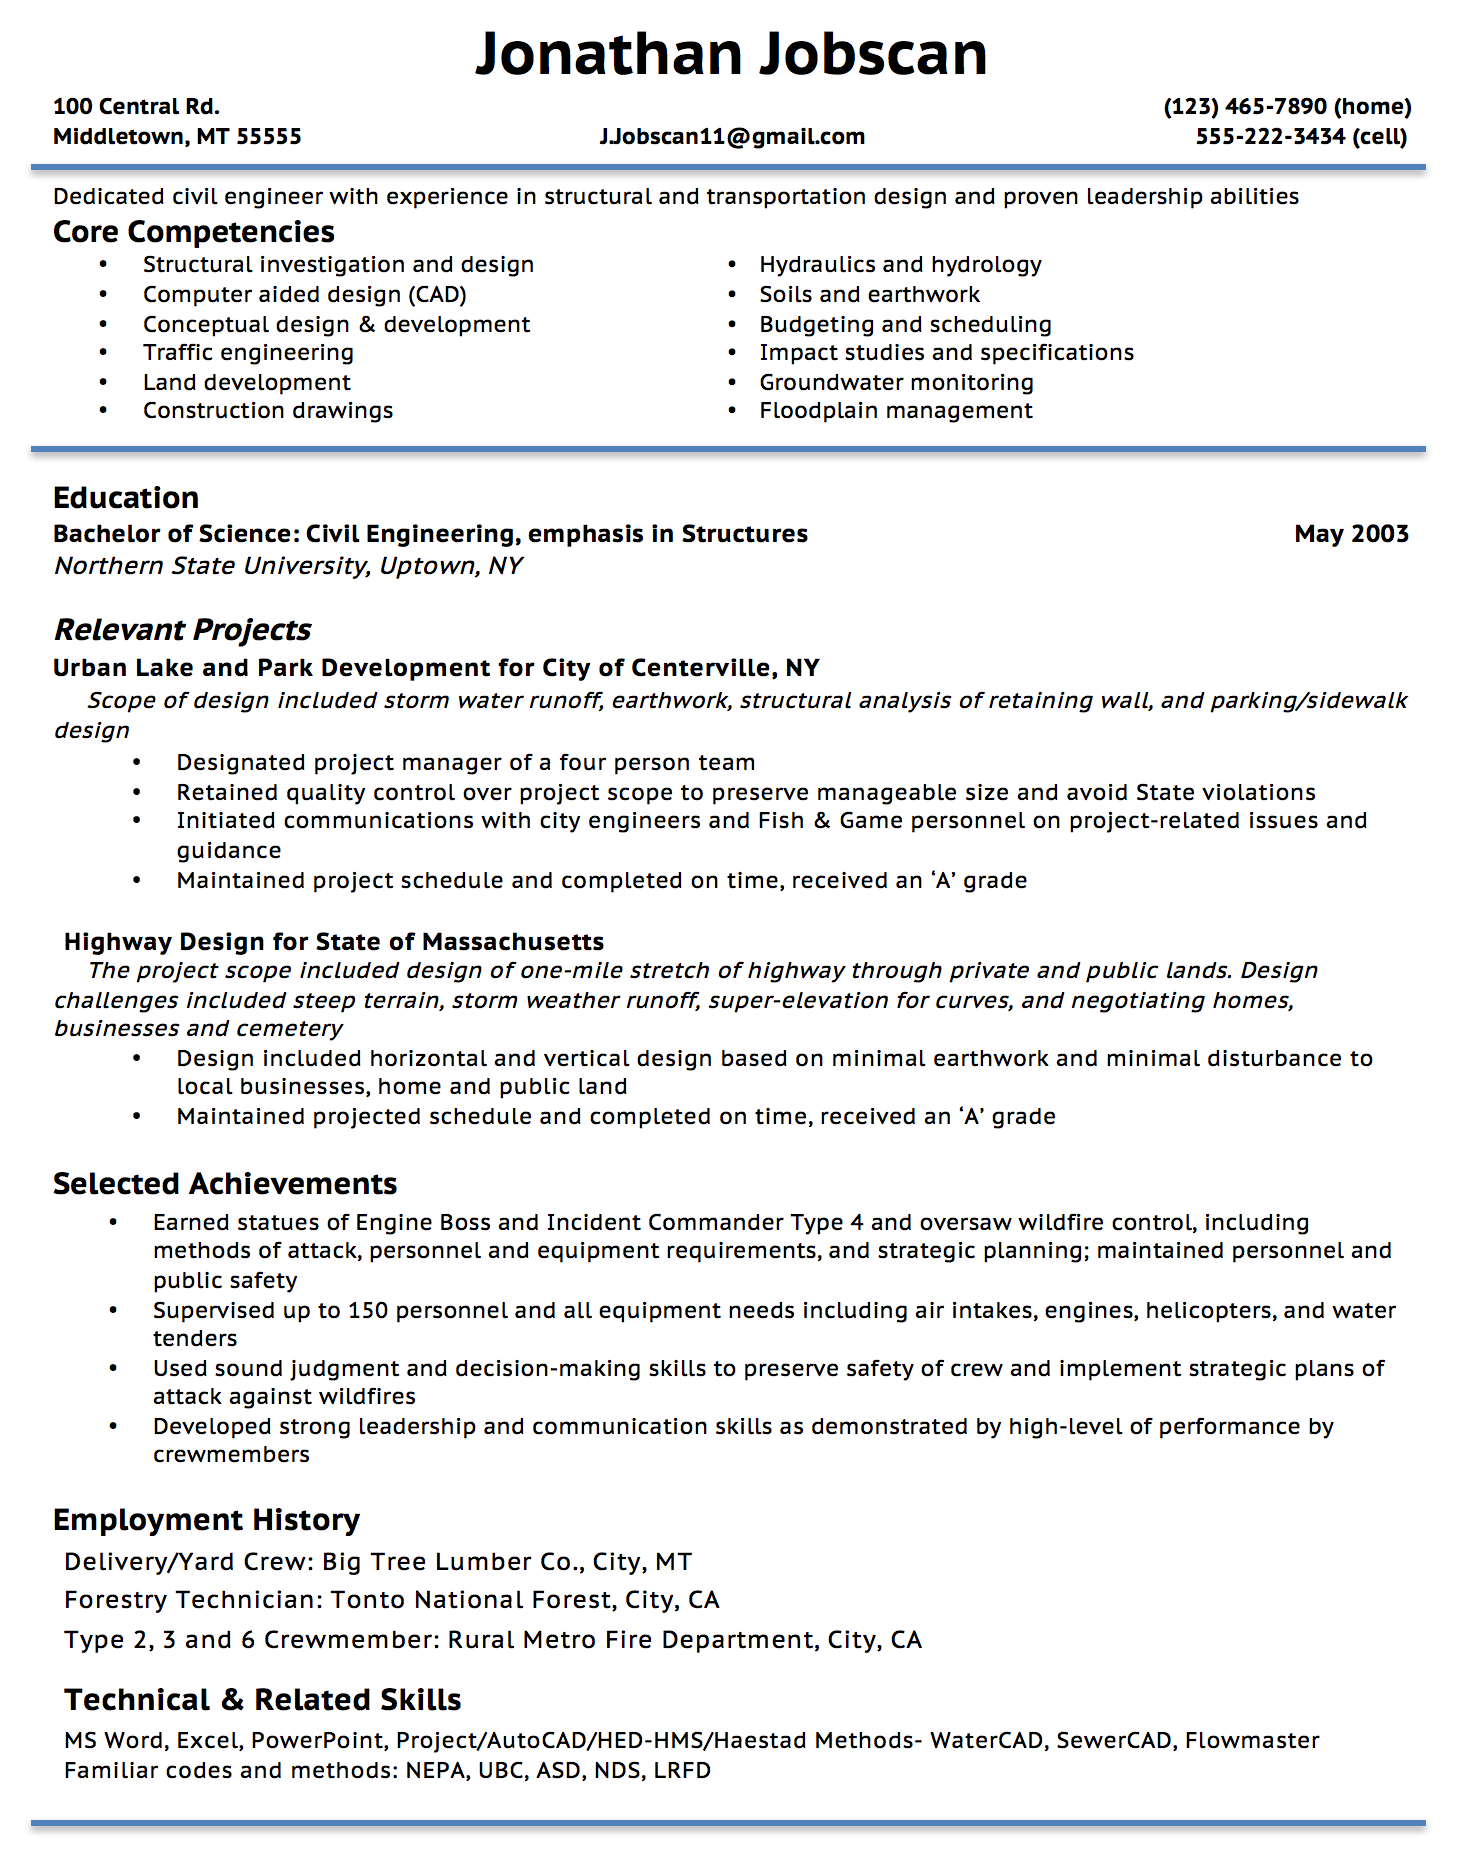 Opposenewapstandardsus  Splendid Resume Writing Guide  Jobscan With Gorgeous Example Of A Functional Resume Format With Divine Computer Skills Resume Example Also How To Update Your Resume In Addition Resume Writer Service And Physical Therapist Assistant Resume As Well As Summary Of Qualifications For Resume Additionally Summary Of Resume From Jobscanco With Opposenewapstandardsus  Gorgeous Resume Writing Guide  Jobscan With Divine Example Of A Functional Resume Format And Splendid Computer Skills Resume Example Also How To Update Your Resume In Addition Resume Writer Service From Jobscanco